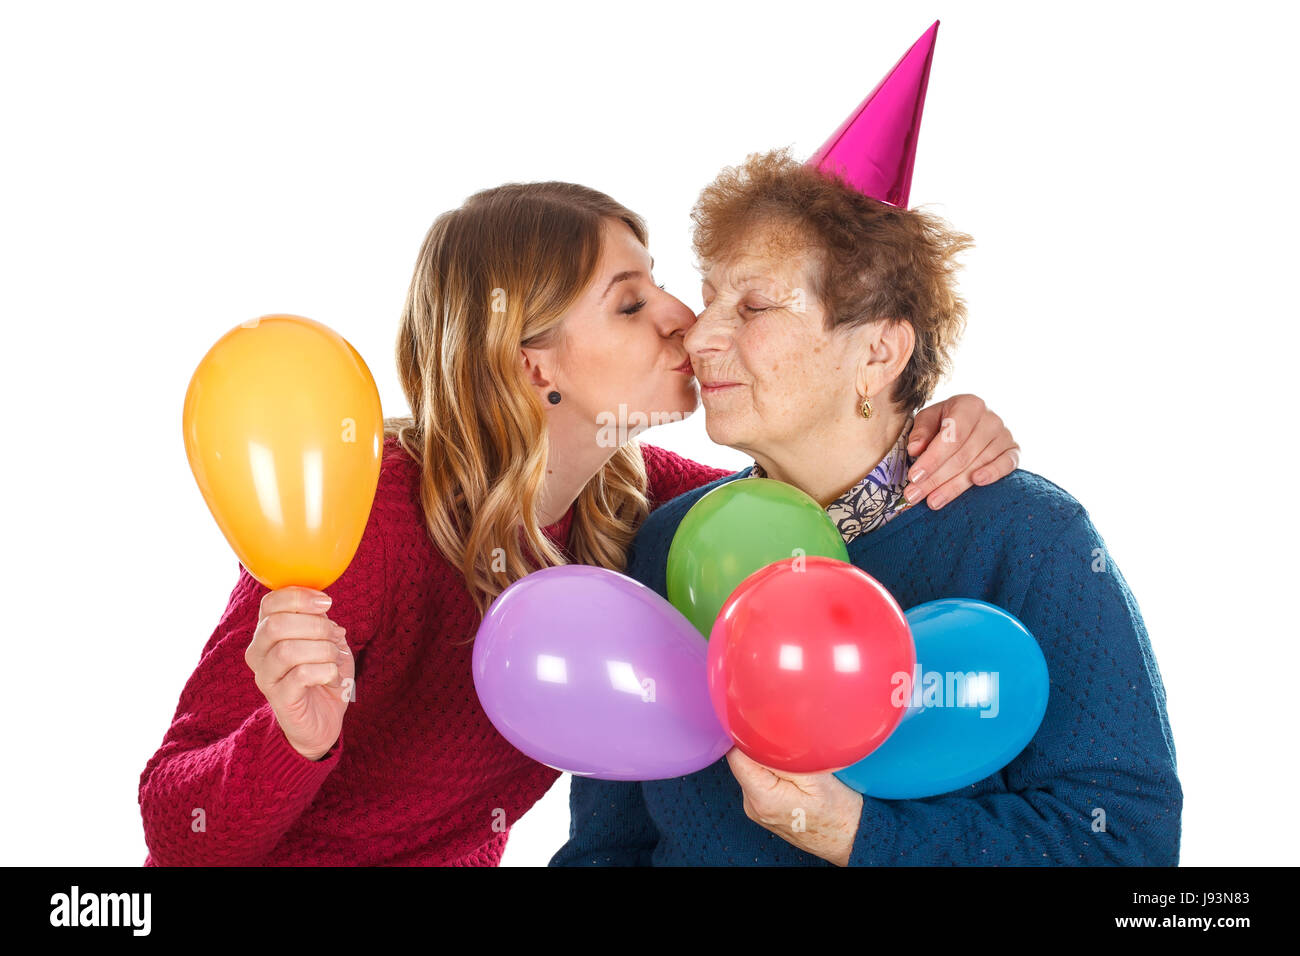 Picture of a happy old lady with her loving grandchild - isolated background - Stock Image